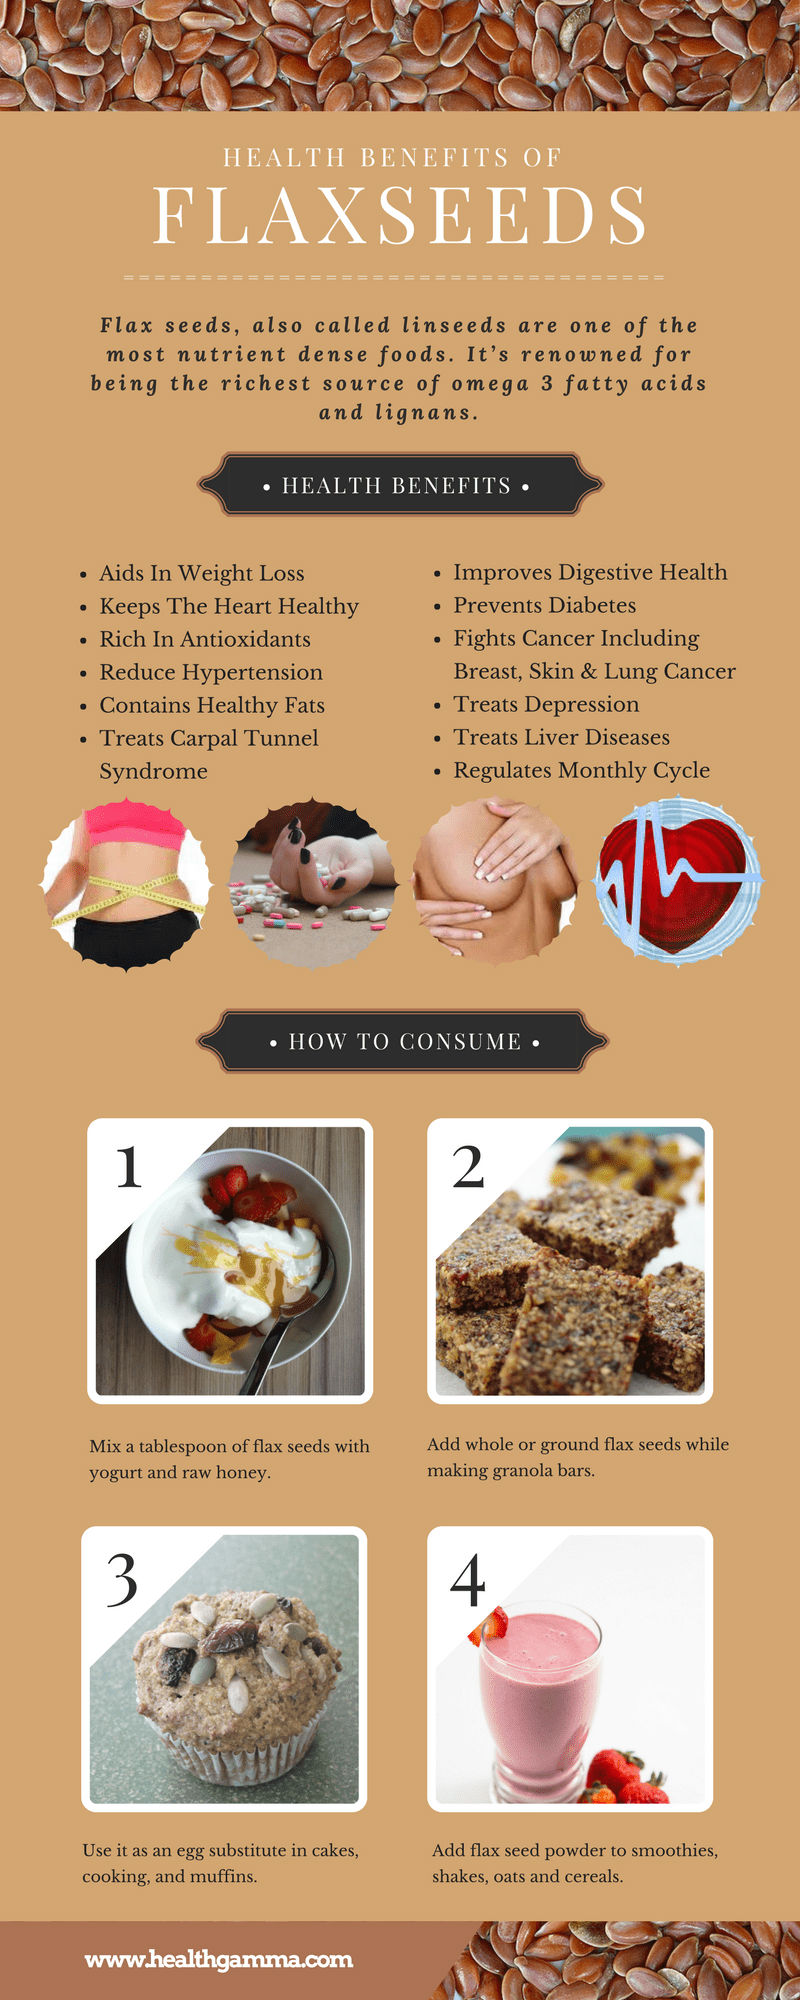 Health Benefits of Flaxseeds [Infographic] | Confessions ...